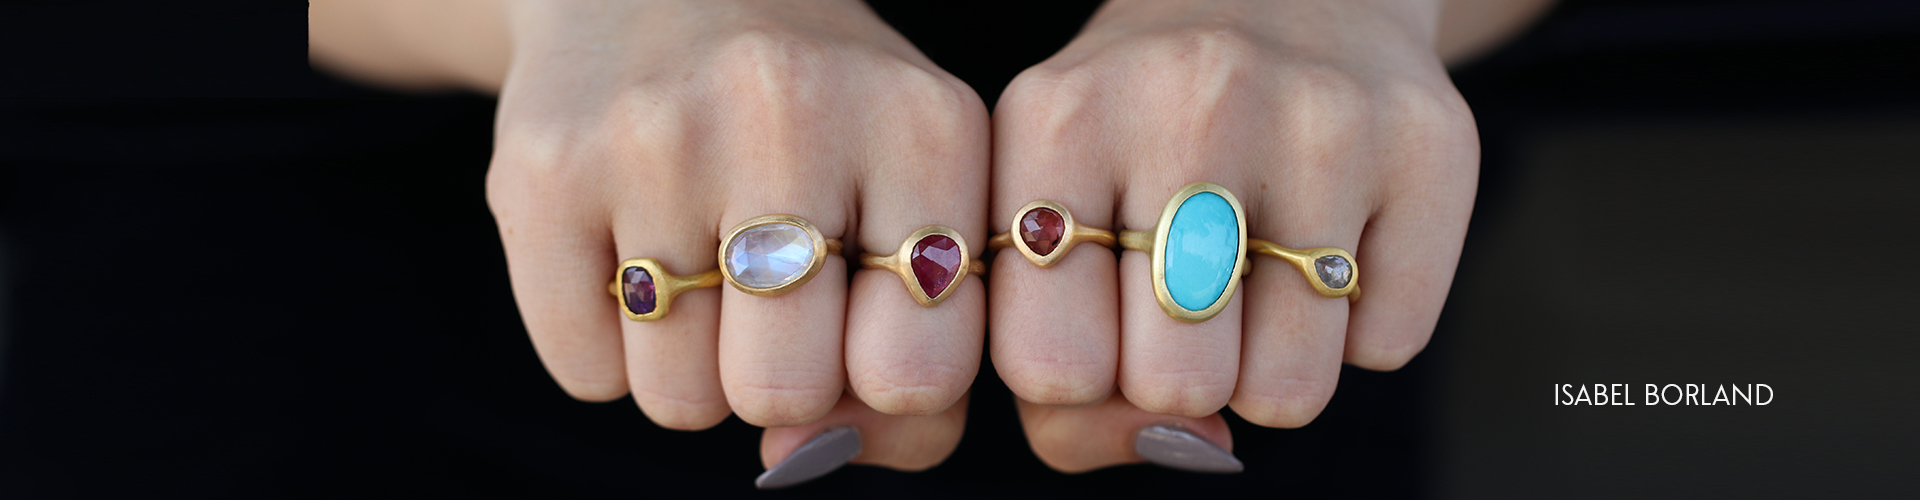 Isabel Borland Gemstone Ring at Voiage Los Angeles